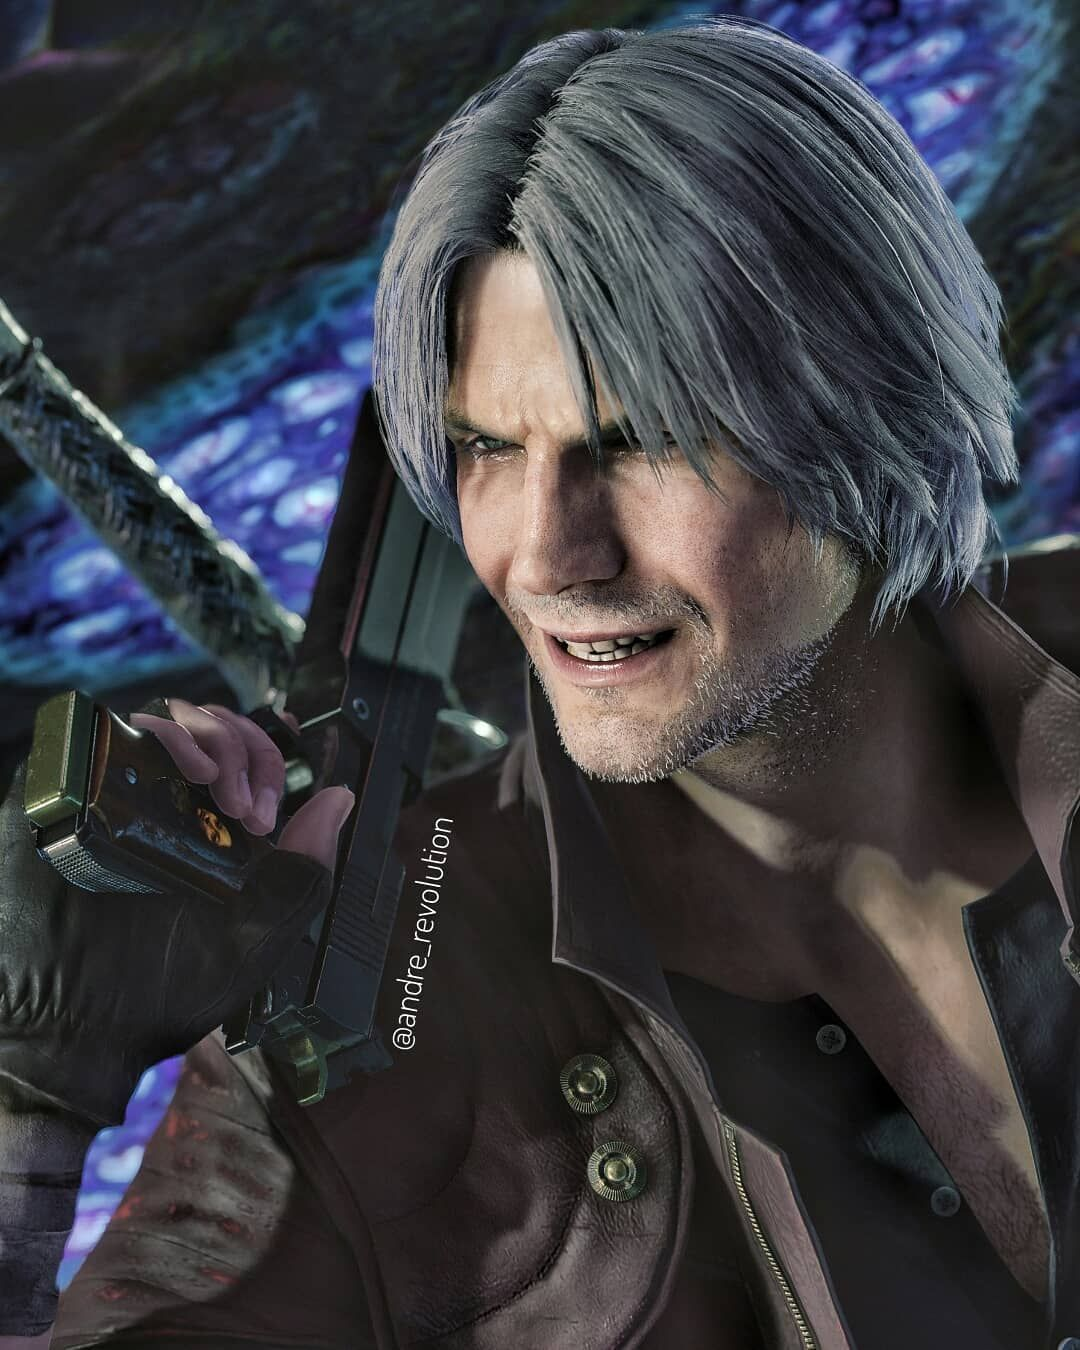 Pin On Imagens Dante devil may cry 5 wallpaper hd